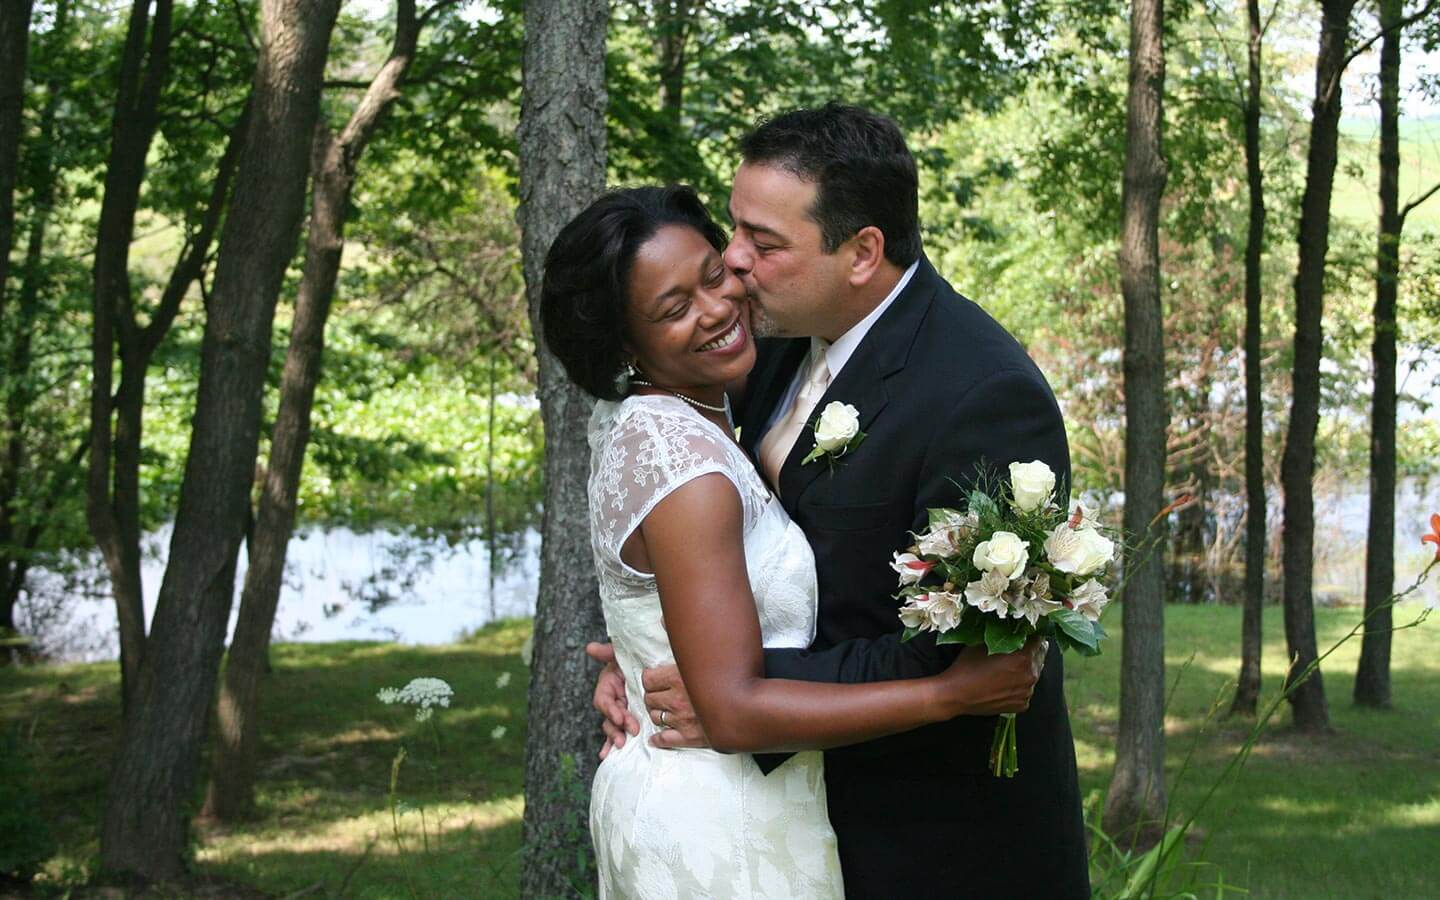 Groom Kissing Bride at Elopement in Michigan